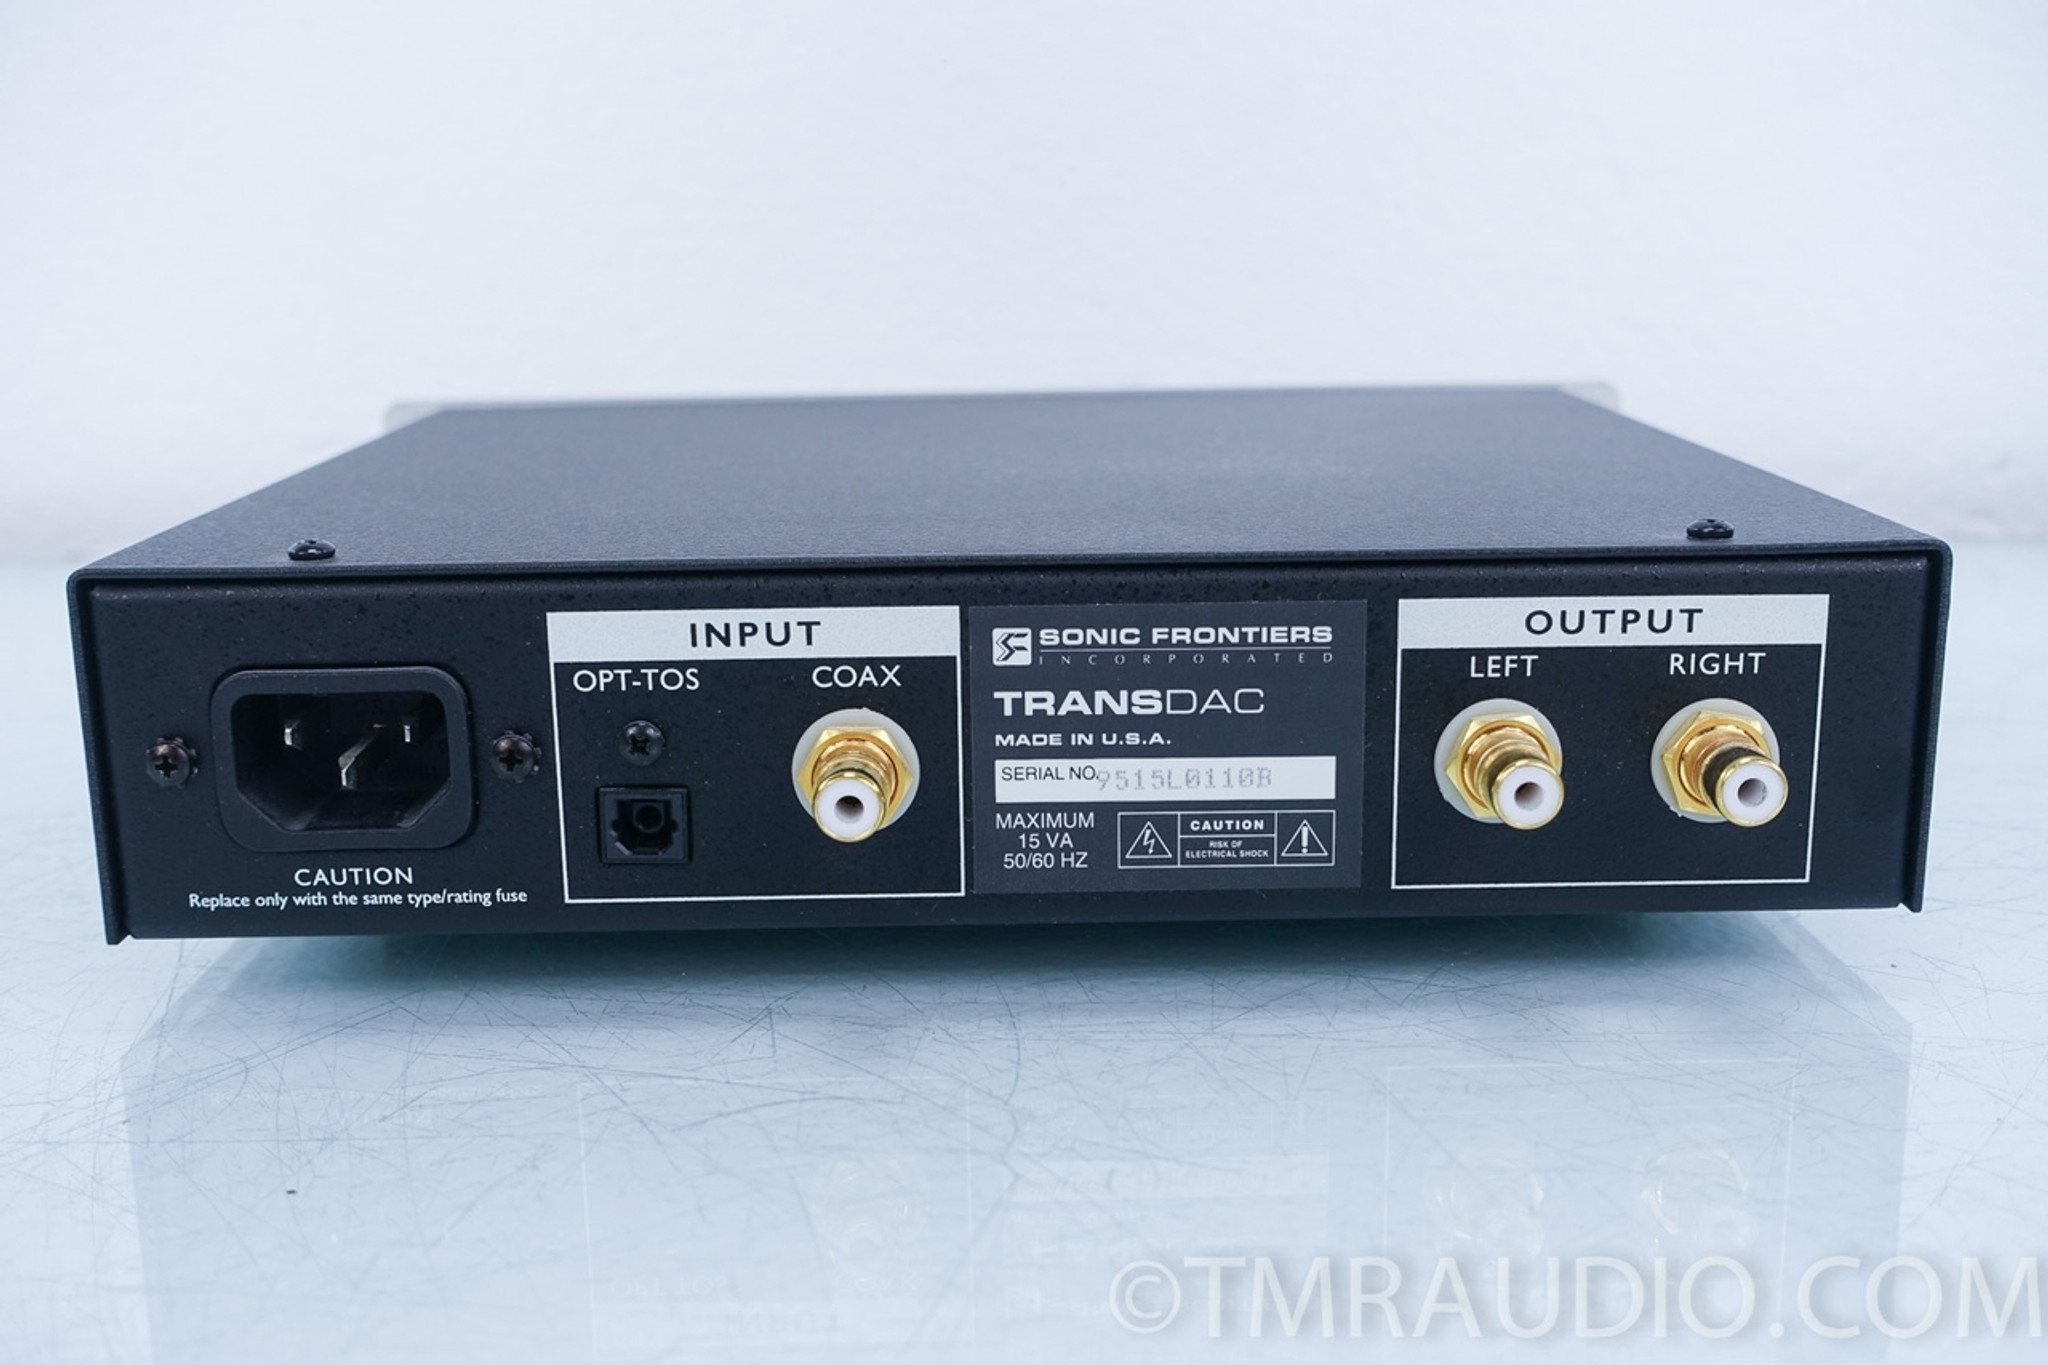 Sonic Frontiers Transdac Dac D A Converter In Factory Box